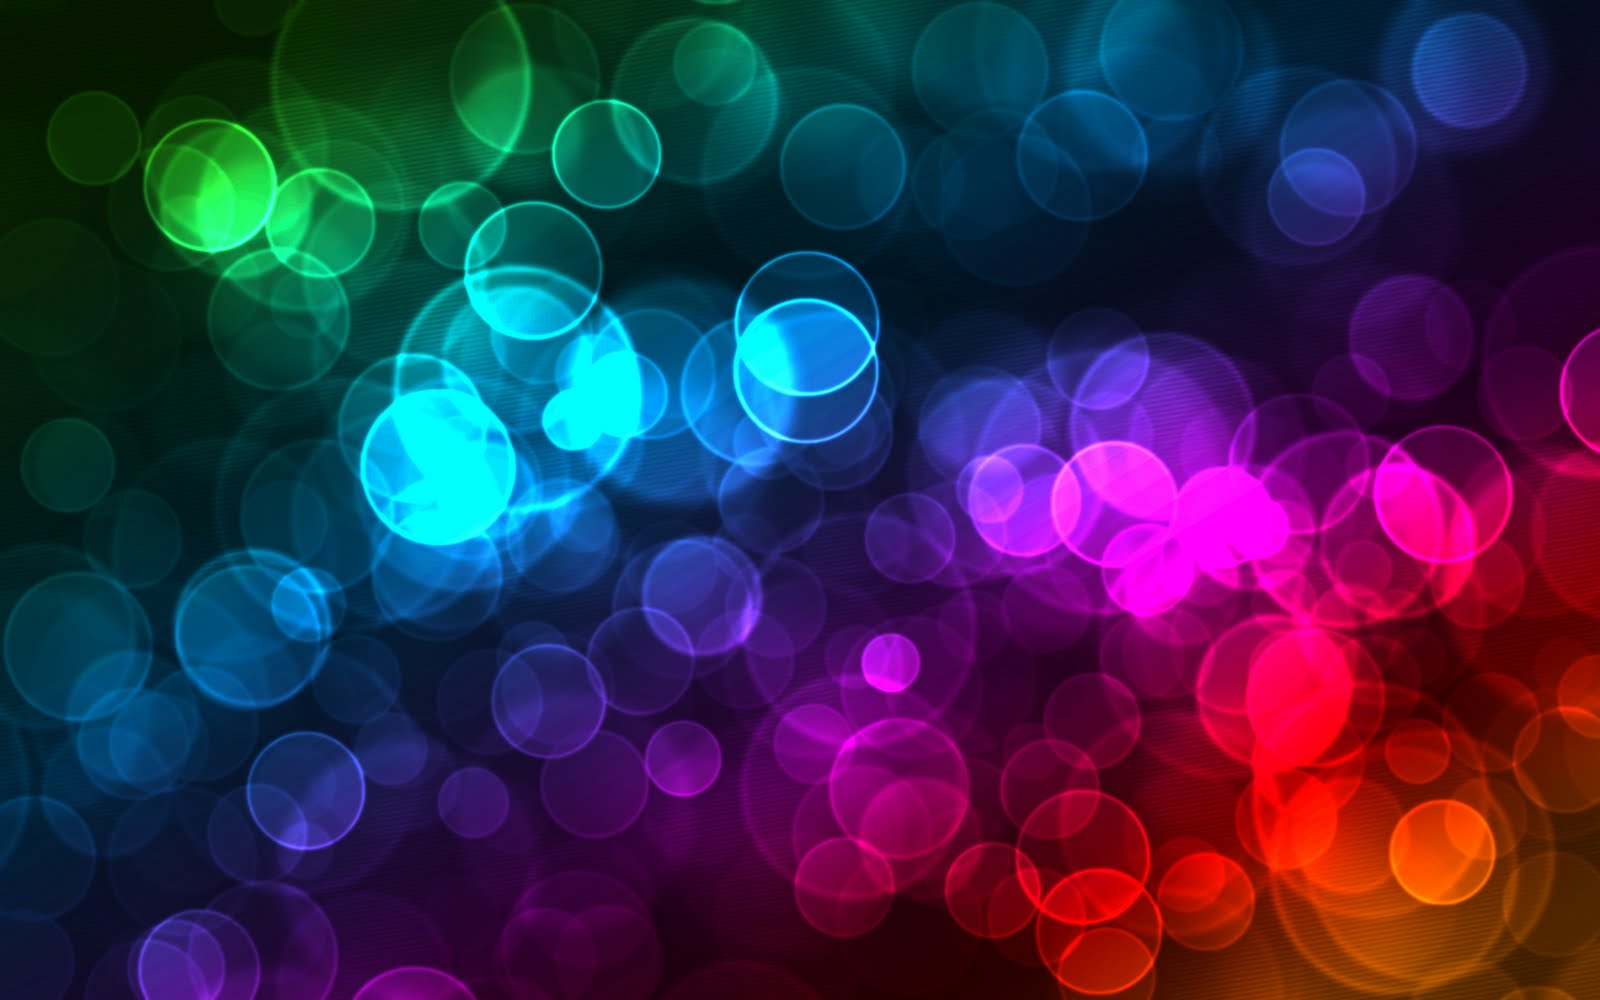 3d Bubbles Wallpaper: Trololo Blogg: Wallpaper Bubbles When Painting